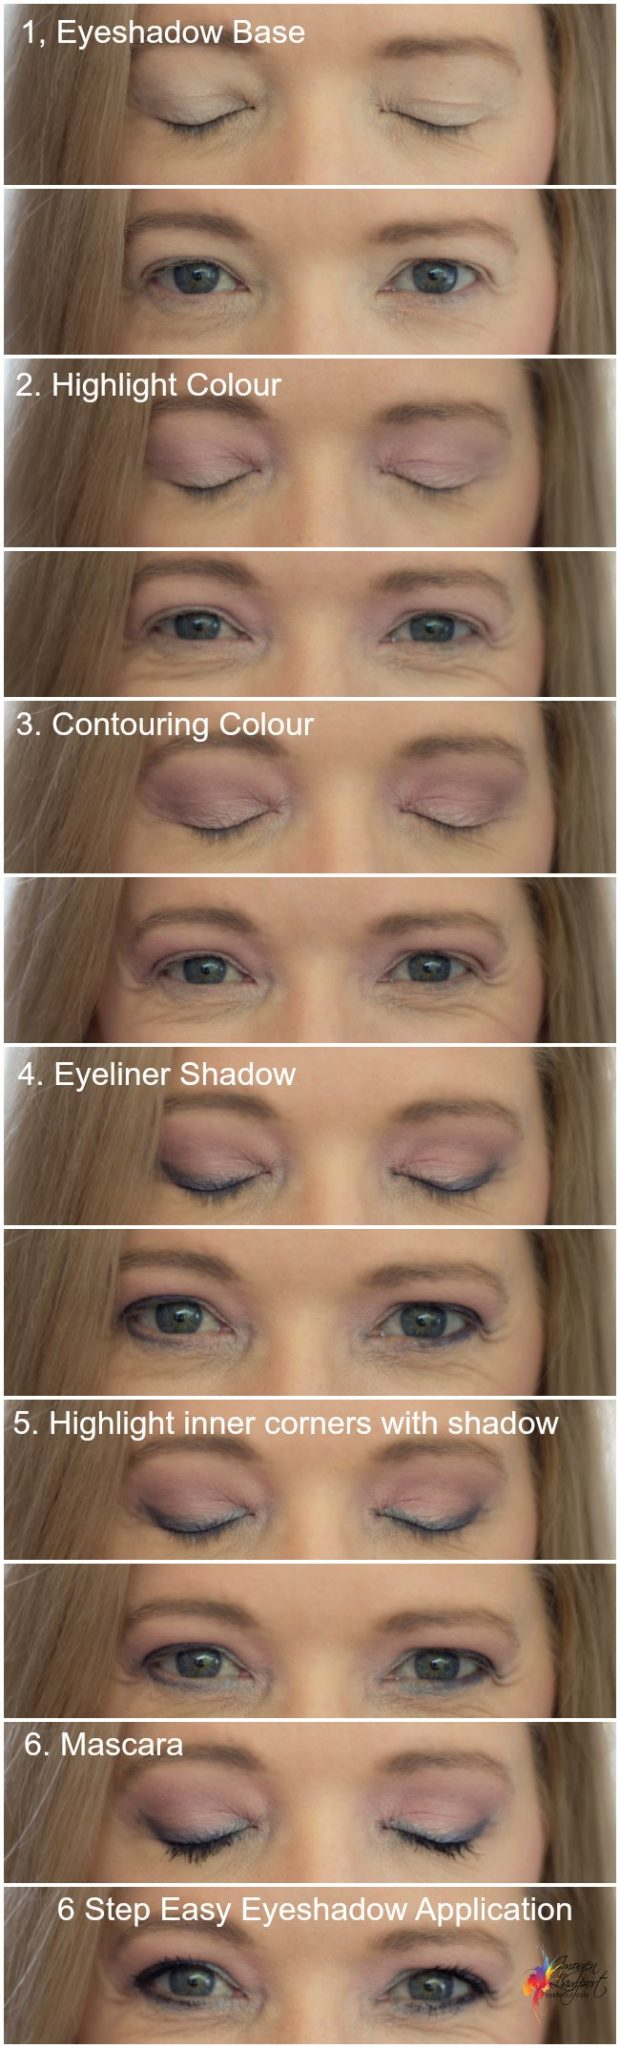 6 Step easy eyeshadow application